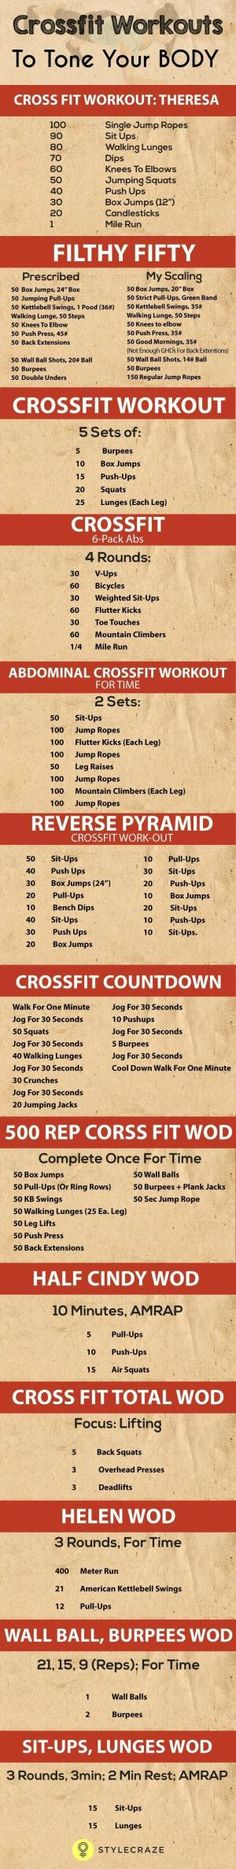 20 Effective Crossfit Workouts To Tone Your Body by kelley